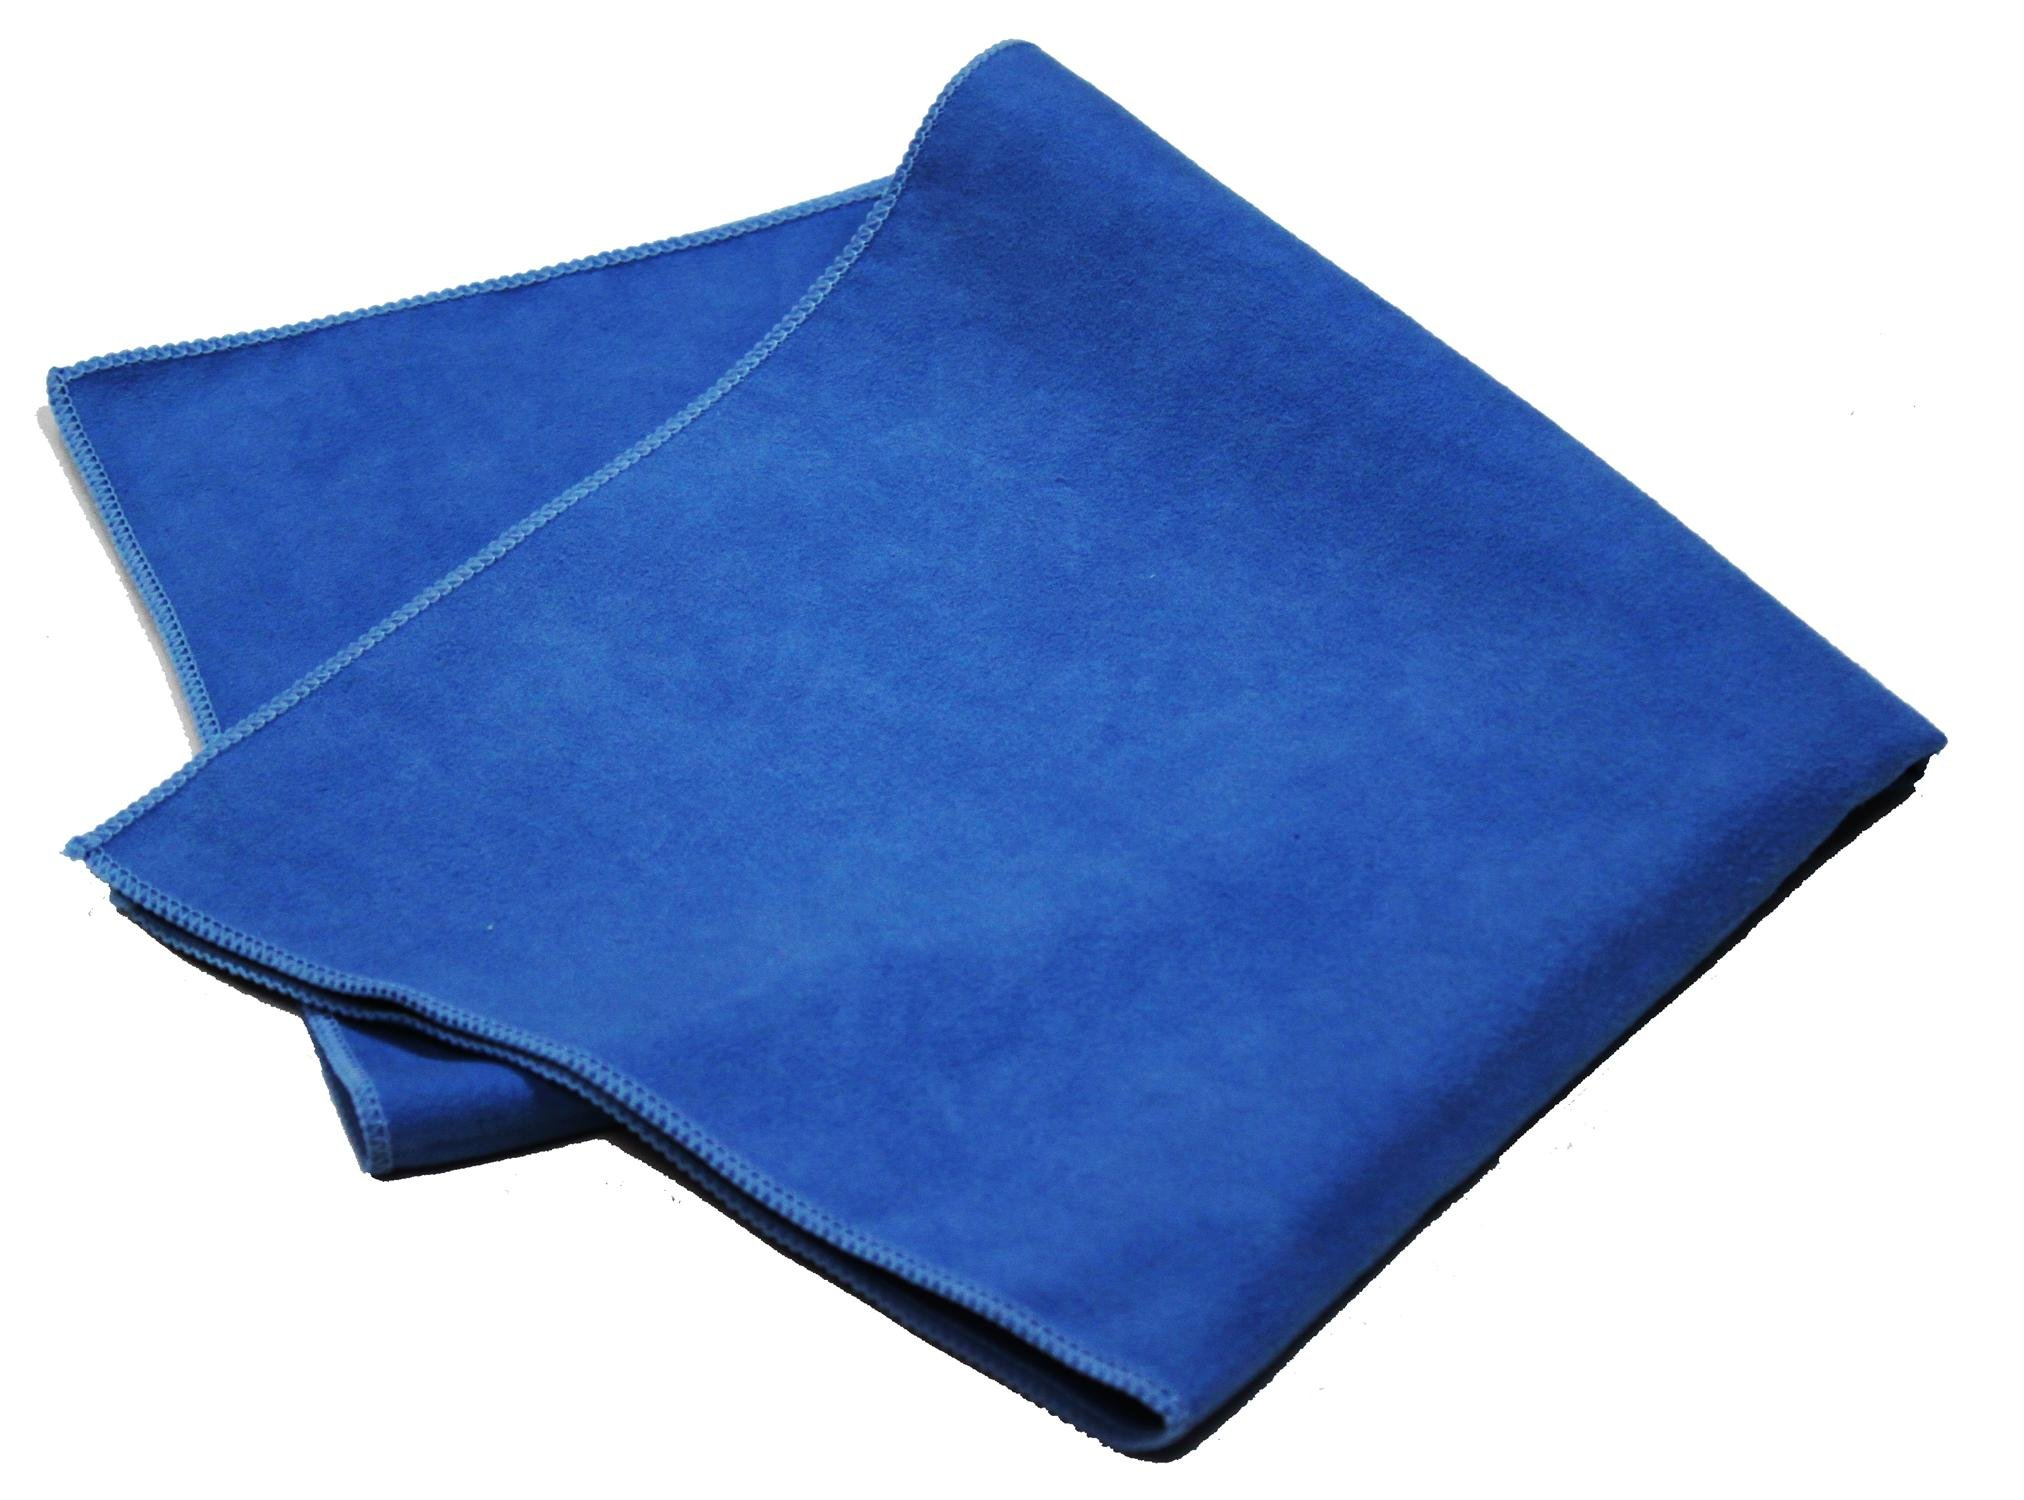 Pro-Clean Basics A73112 Microfiber Suede Clean & Polishing Cloth, Lint Free, 220 GSM, Blue, 16'' x 16'', Pack of 48